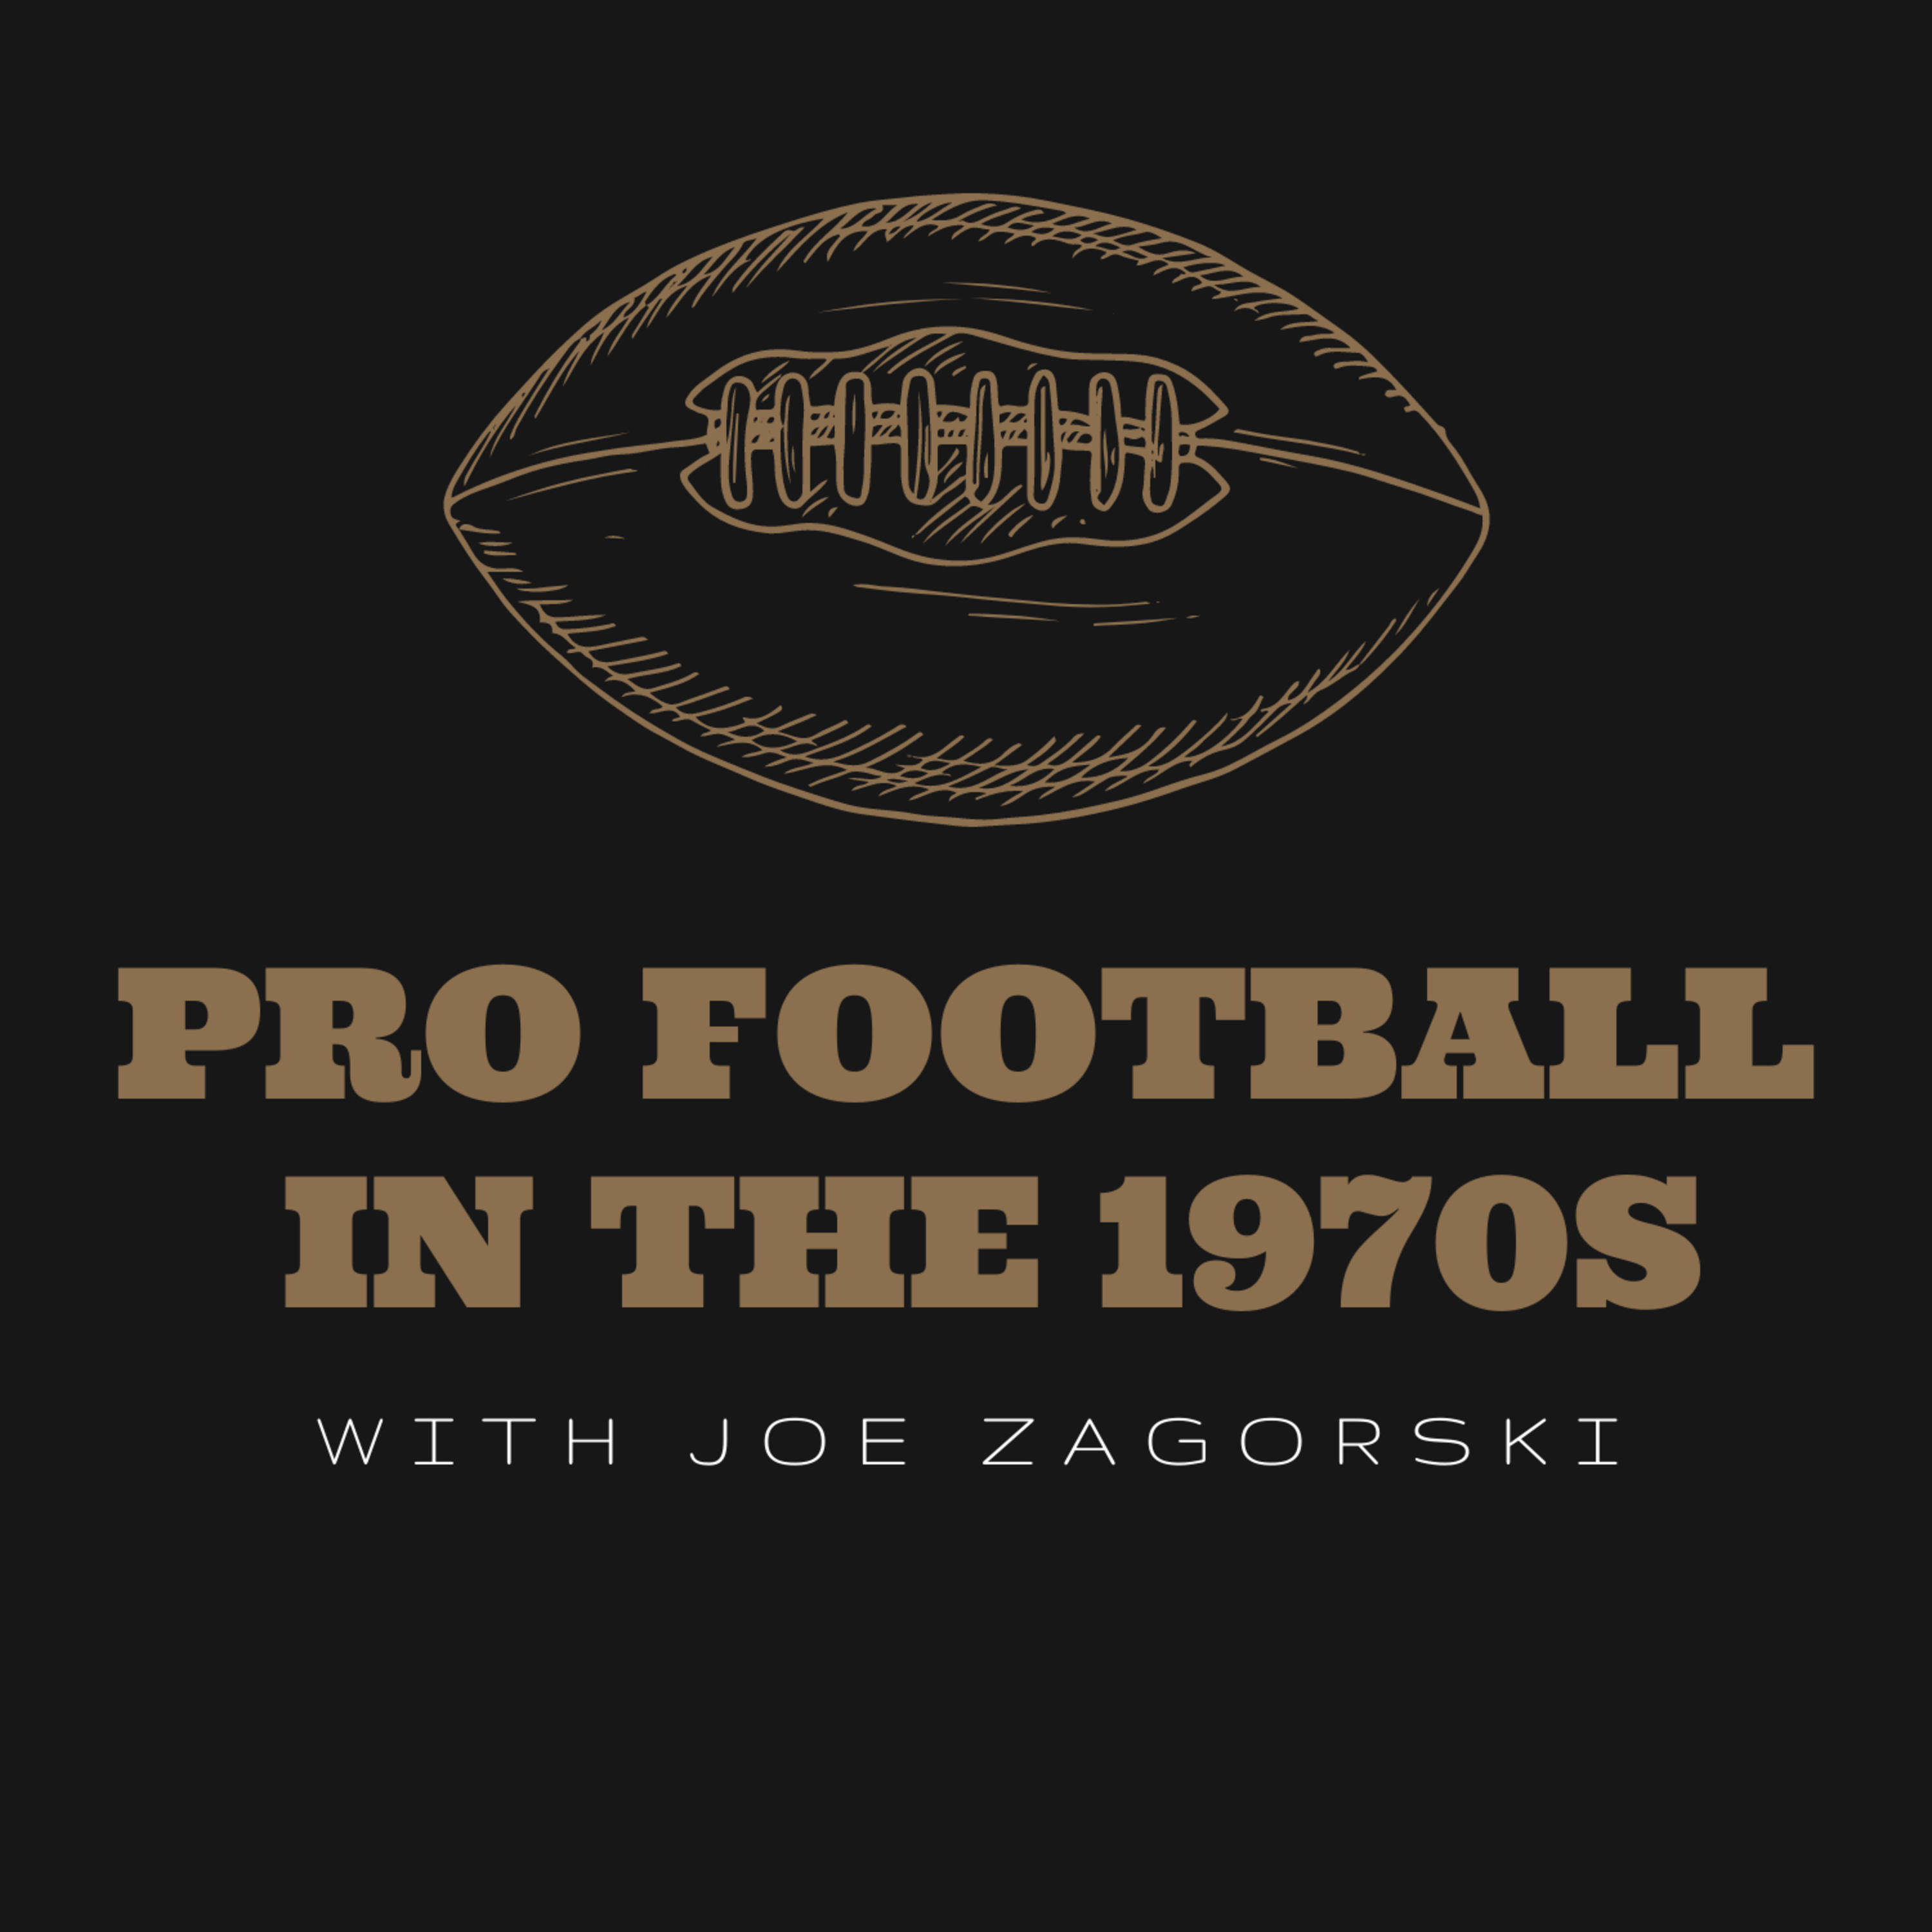 Artwork for podcast Pro Football in the 1970s